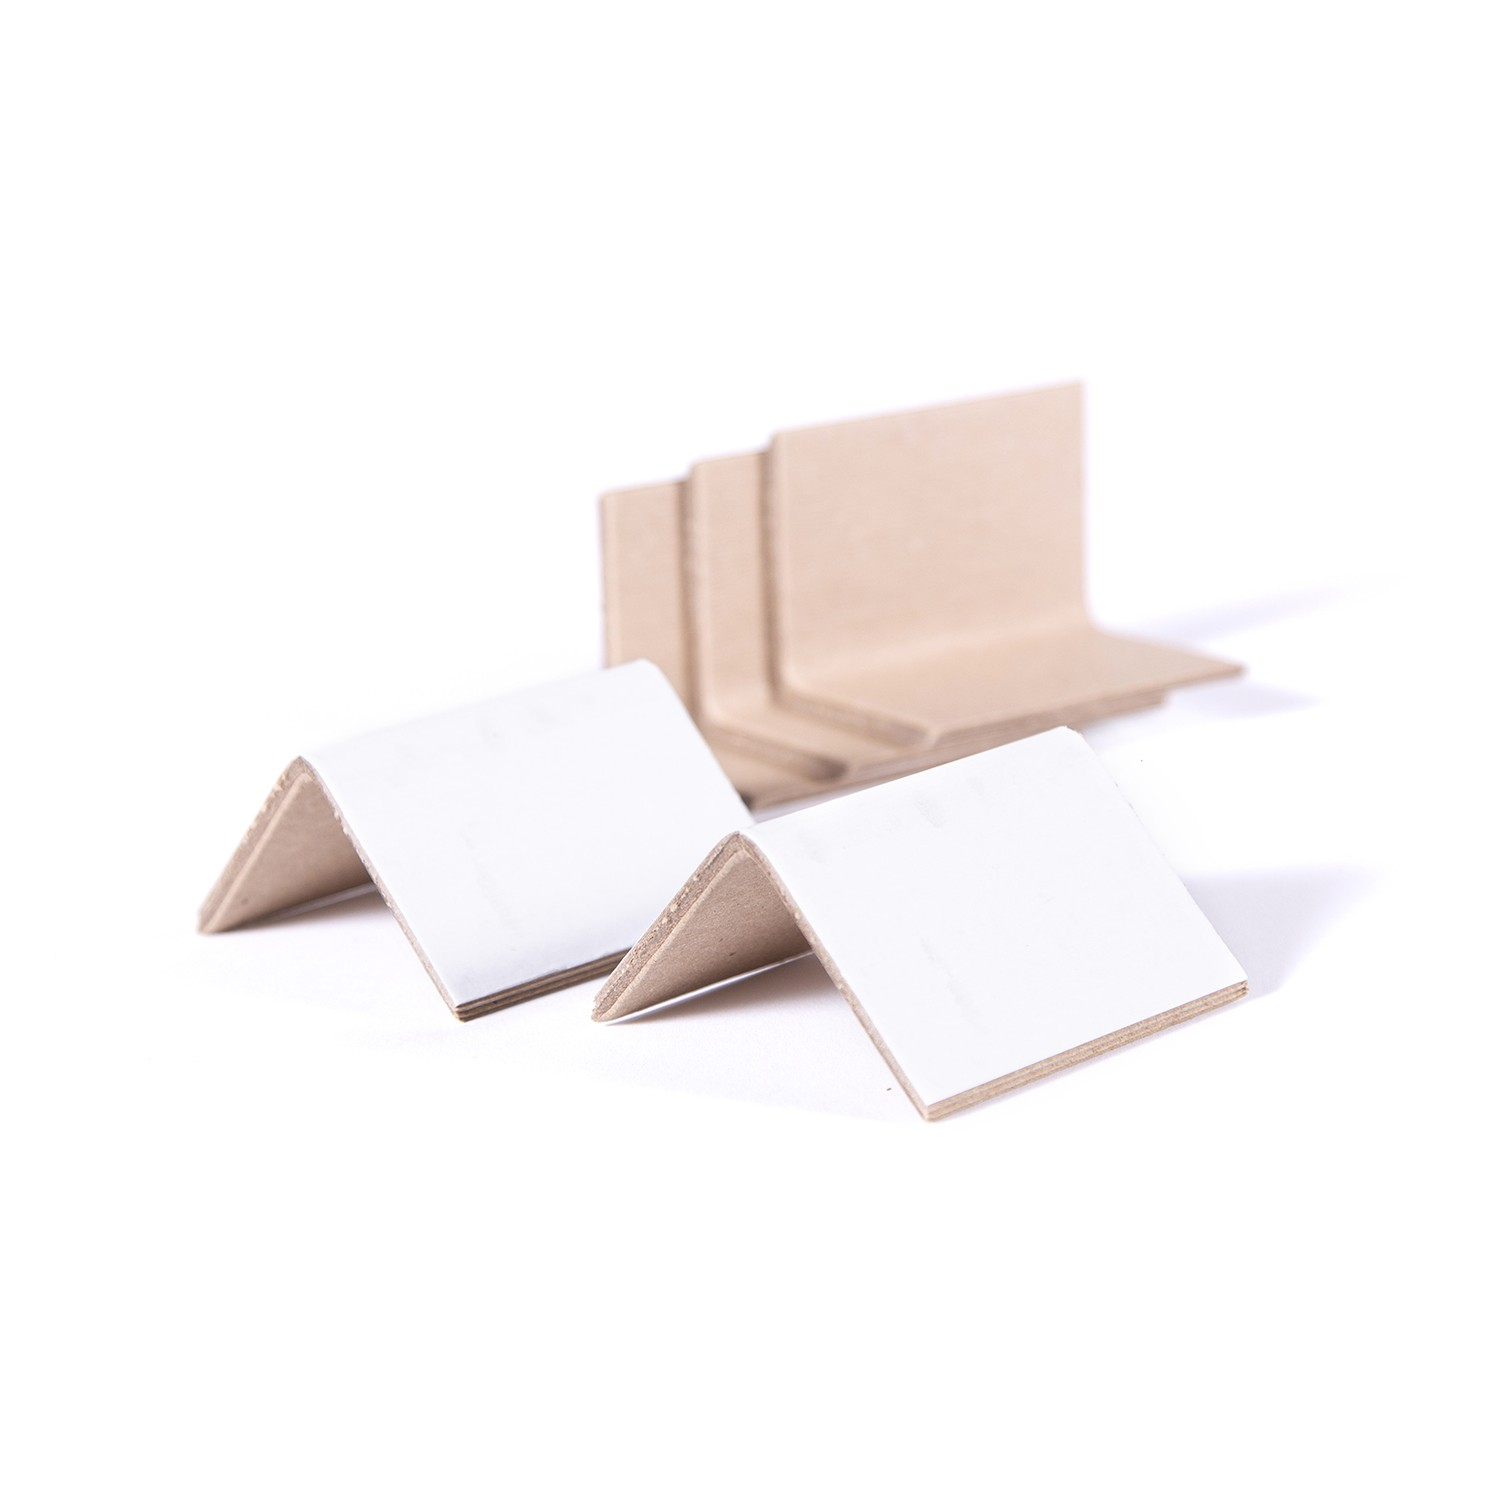 "2 x 2 x 3"" - White Corrugated Strap Guards ""Carton Corner Protectors"" 1000 Units"